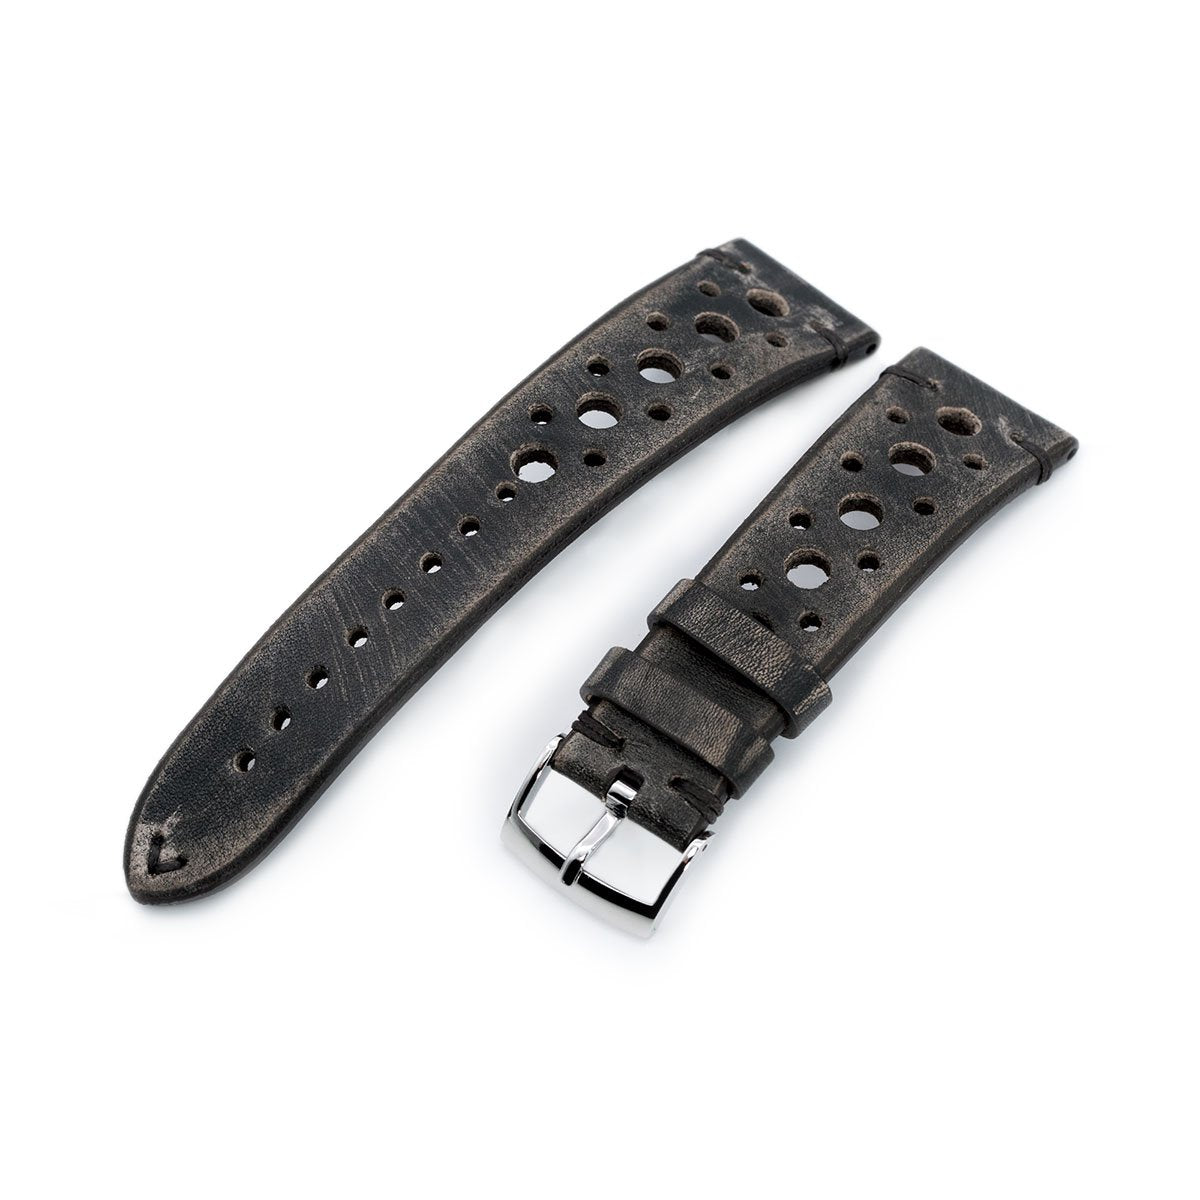 20mm or 22mm MiLTAT Italian Handmade Racer Vintage Charcoal Grey Watch Strap Same Stitching Strapcode Watch Bands